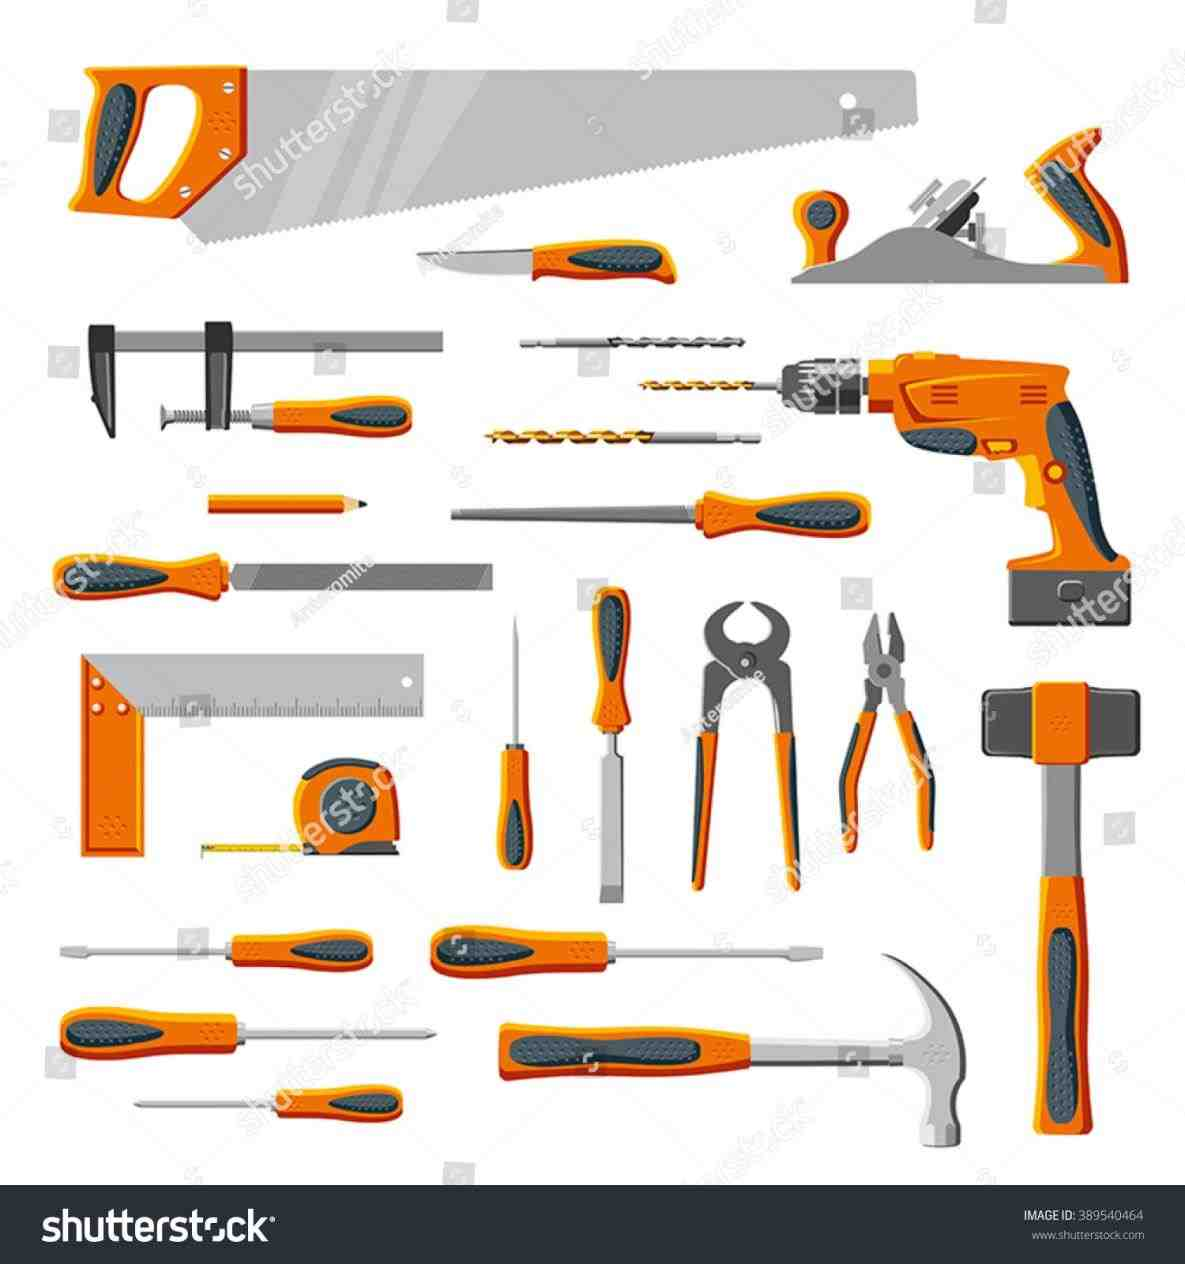 Carpentry Clipart Woodworking Tool Carpentry Woodworking